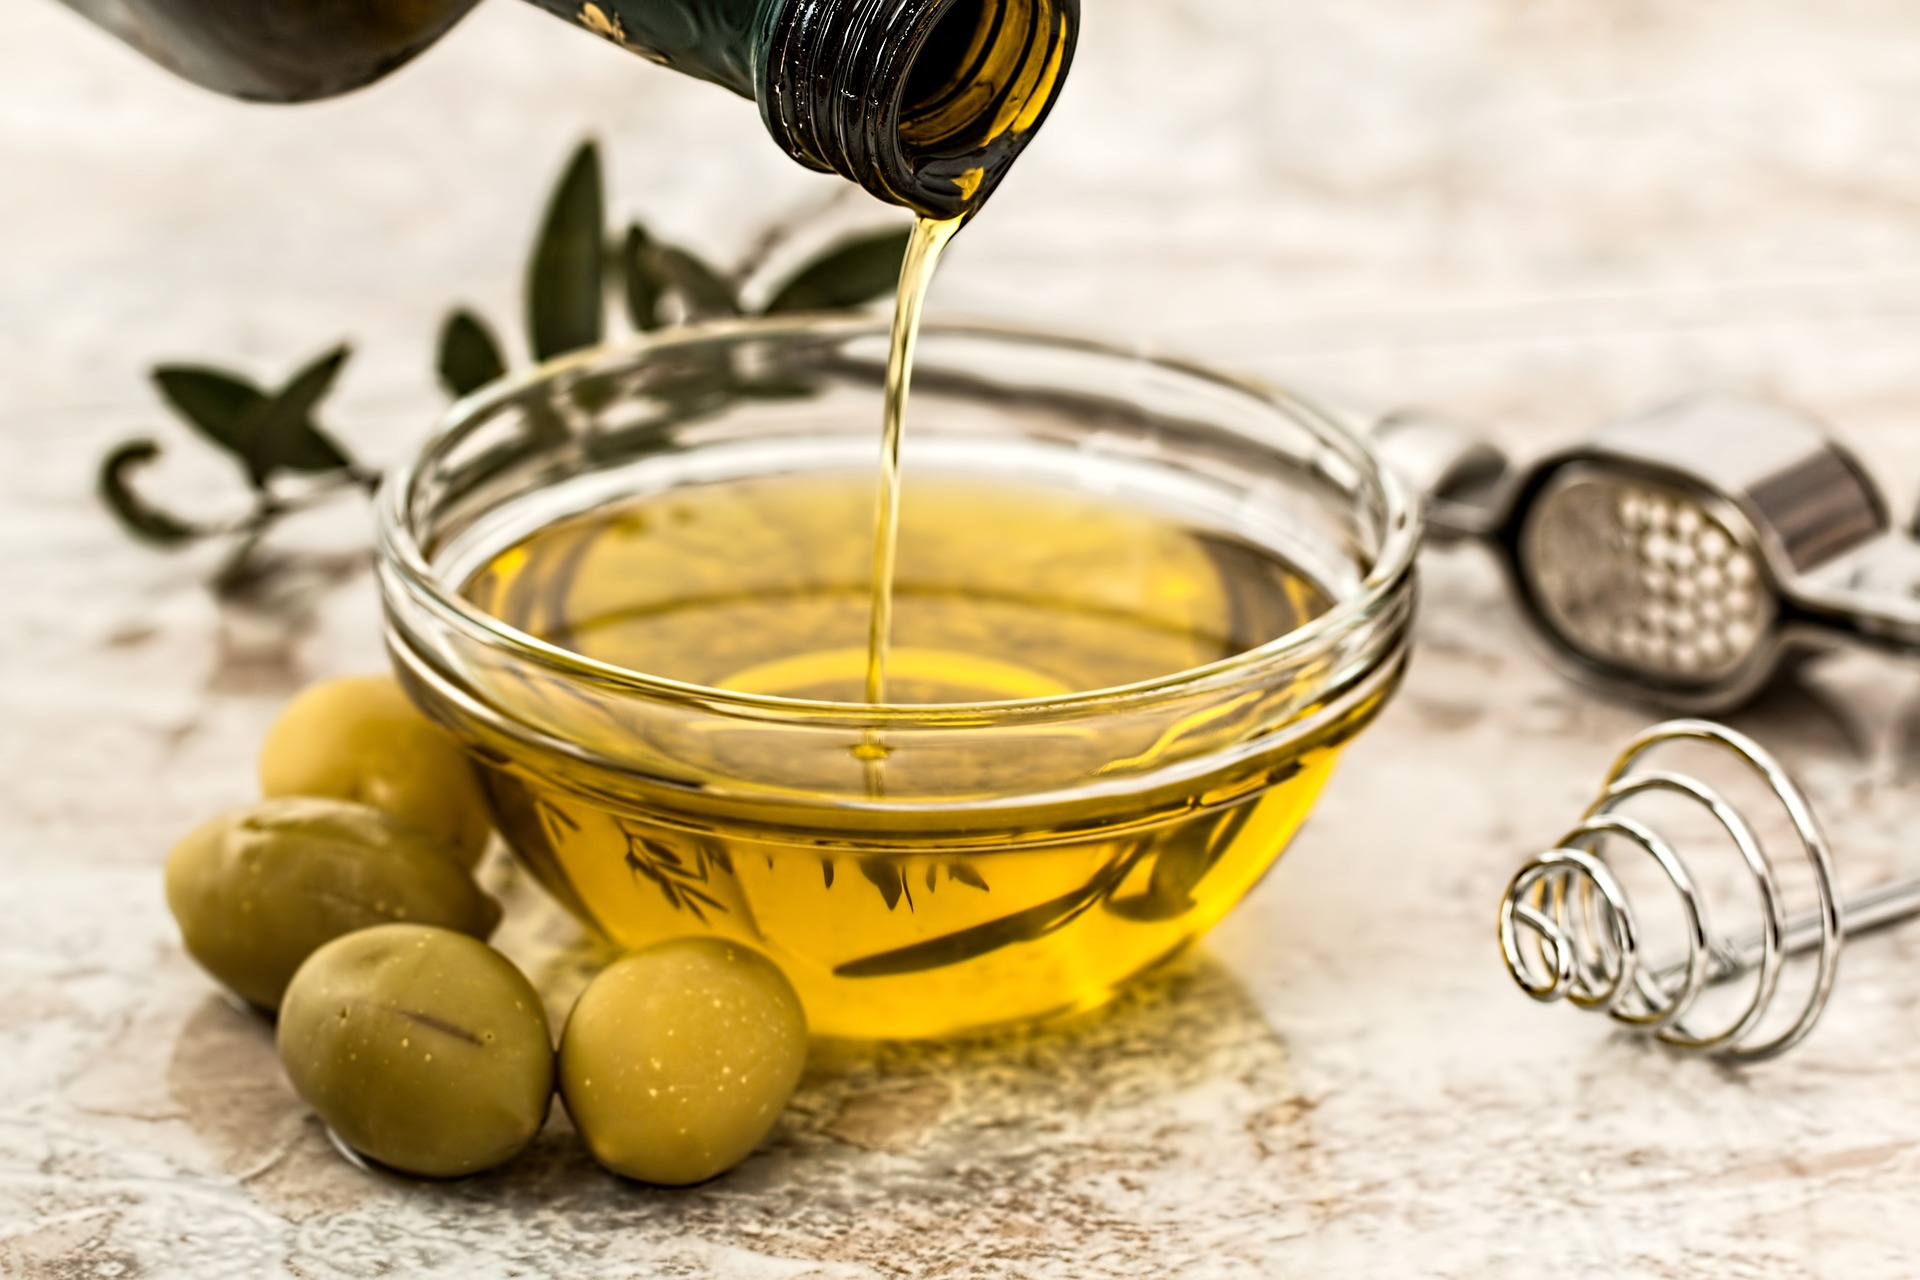 Olive oil - a symbol of provision, healing, abundance, sanctification, anointing, the Holy Spirit